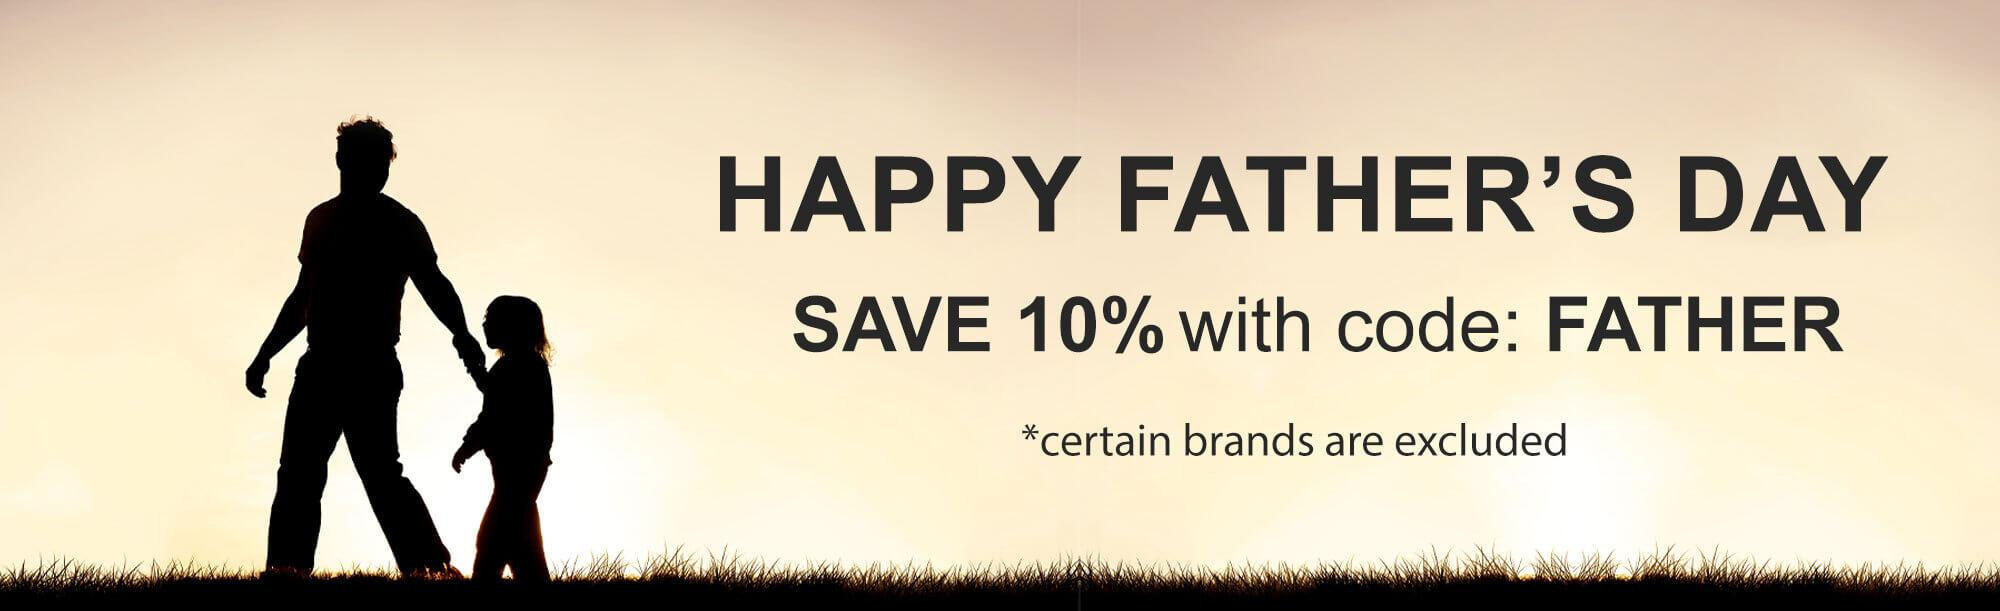 LuxeDecor_Father_Day_2000x611_banner.jpg